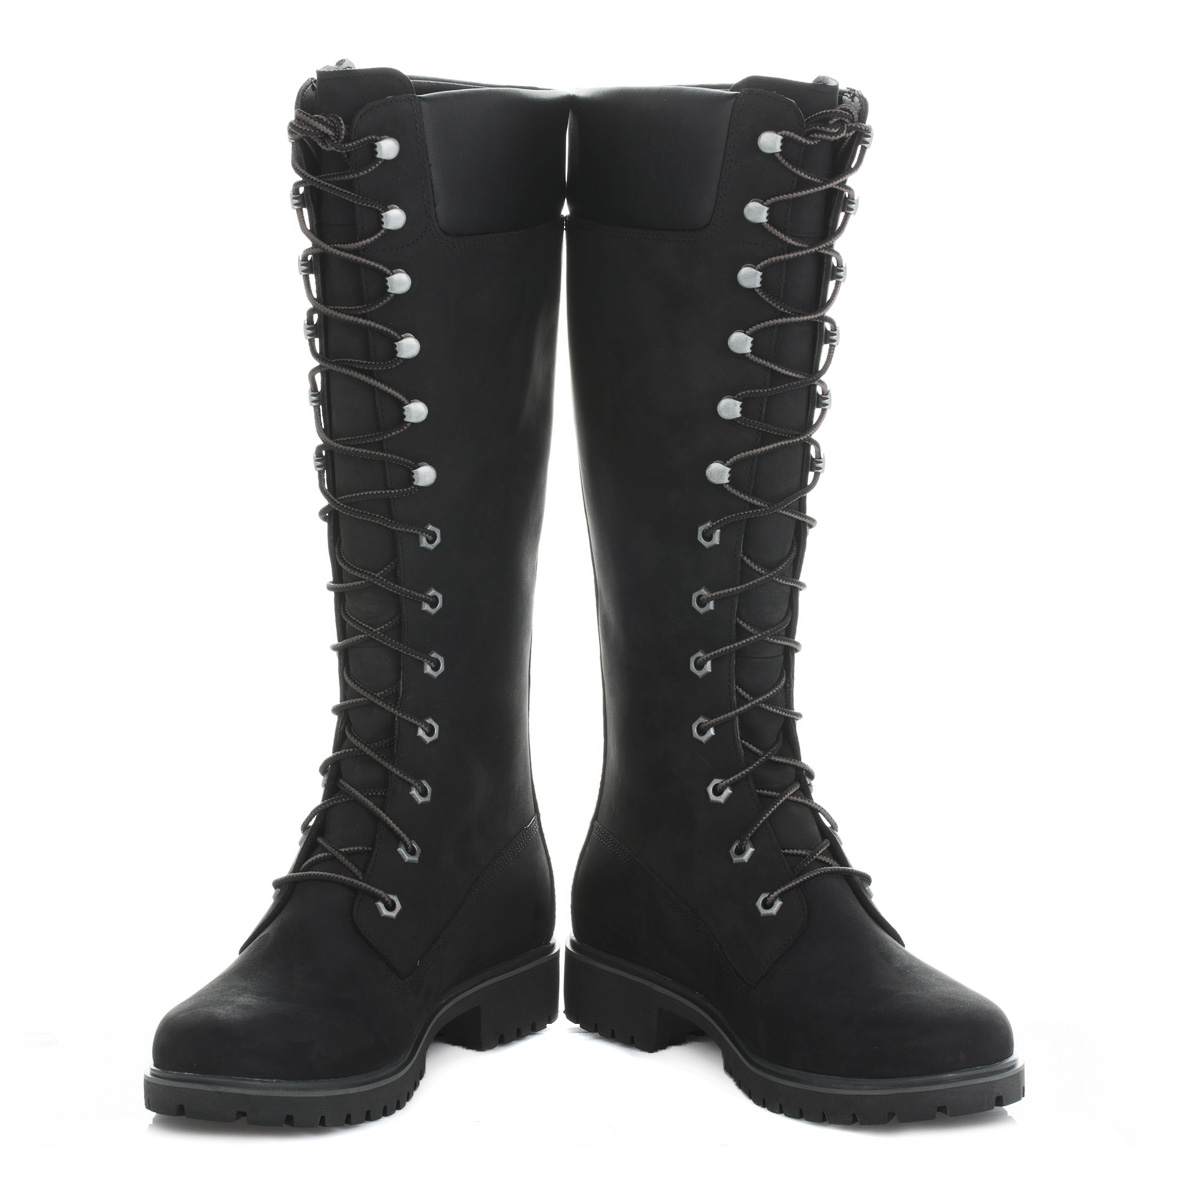 Women's Lace Up Boots. Showing 48 of results that match your query. Search Product Result. Product - Legend8 Leatherette Military Combat Boot Lace Up Foldable Women New Shoe. Product Image. Price $ 86 - $ Product Title. Legend8 Leatherette Military Combat Boot Lace Up Foldable Women New Shoe.